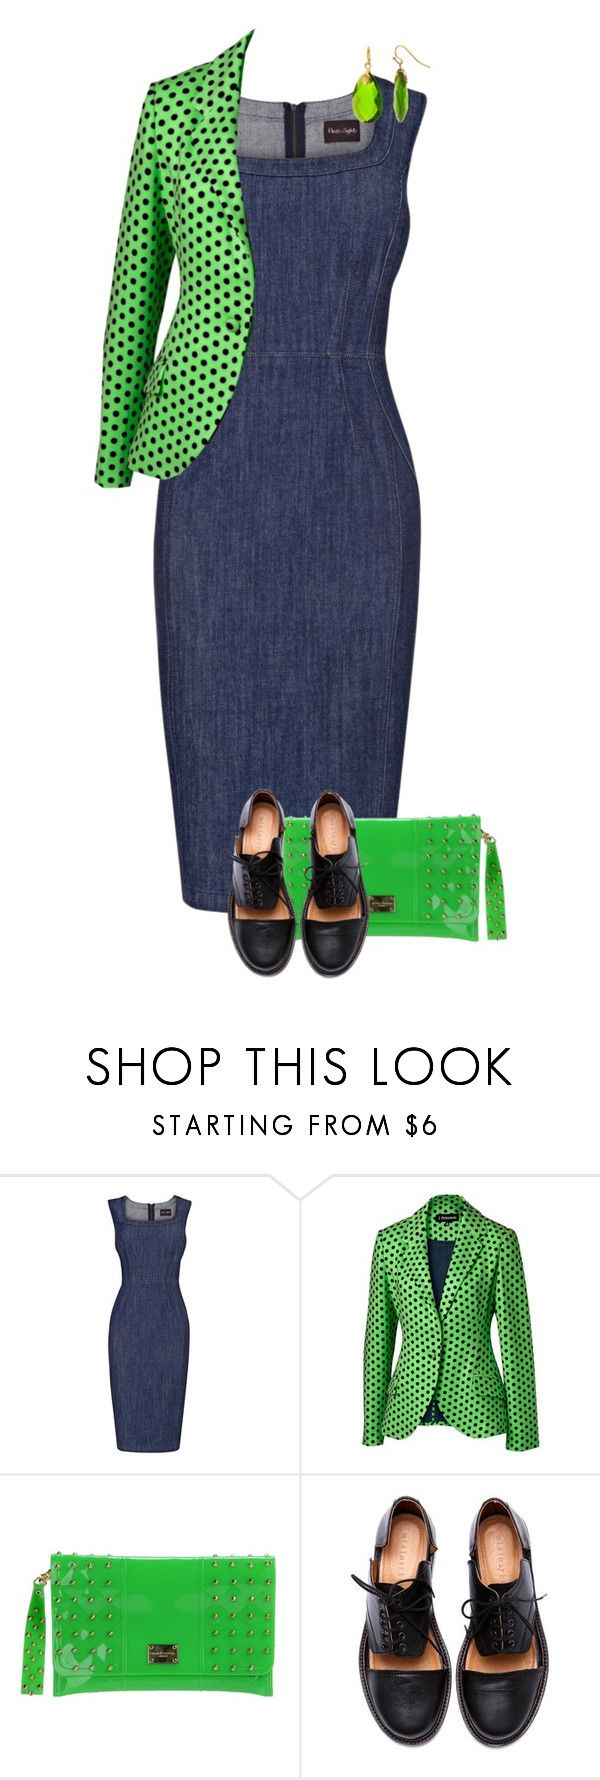 """Denim & Neon"" by feelgood35 ❤ liked on Polyvore featuring Phase Eight, J. Peterman, Hervê Guyel, Minimarket, denim, neon, GREEN, PolkaDots and cutoutstyle"